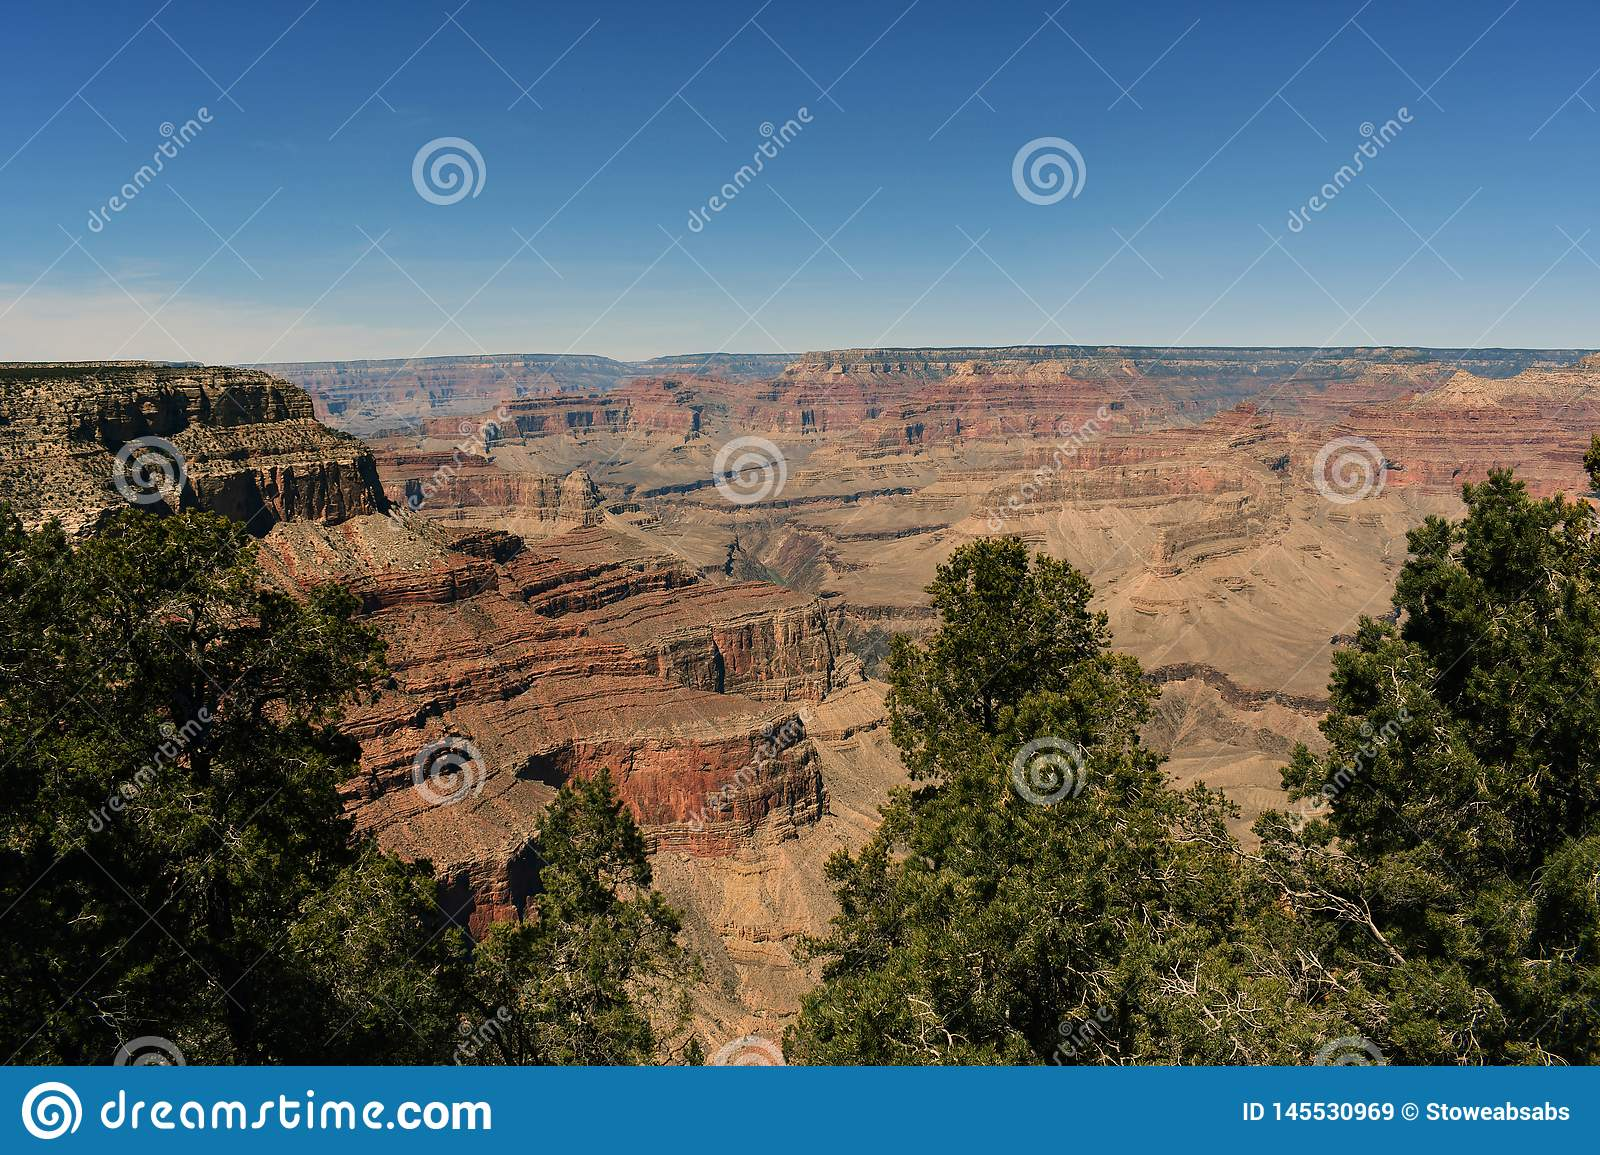 Beautiful view of grand canyon and trees